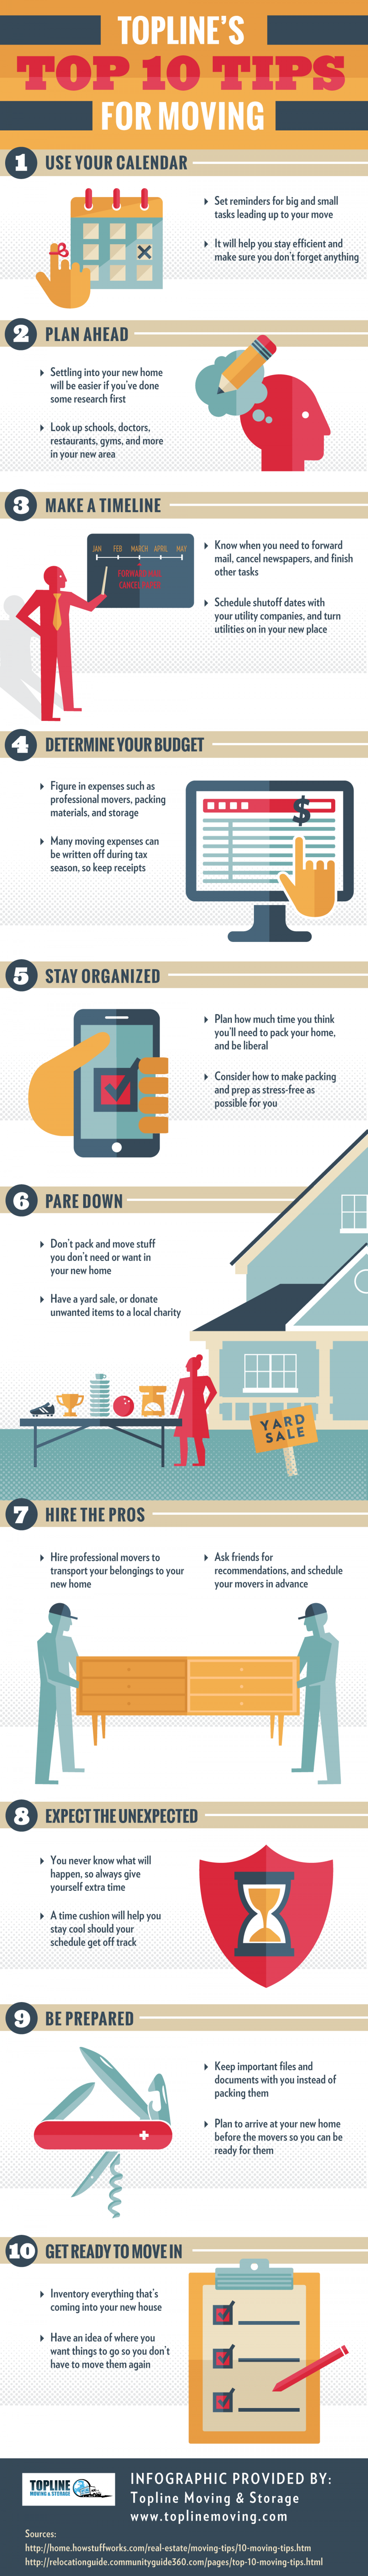 Topline's Top 10 Tips for Moving Infographic